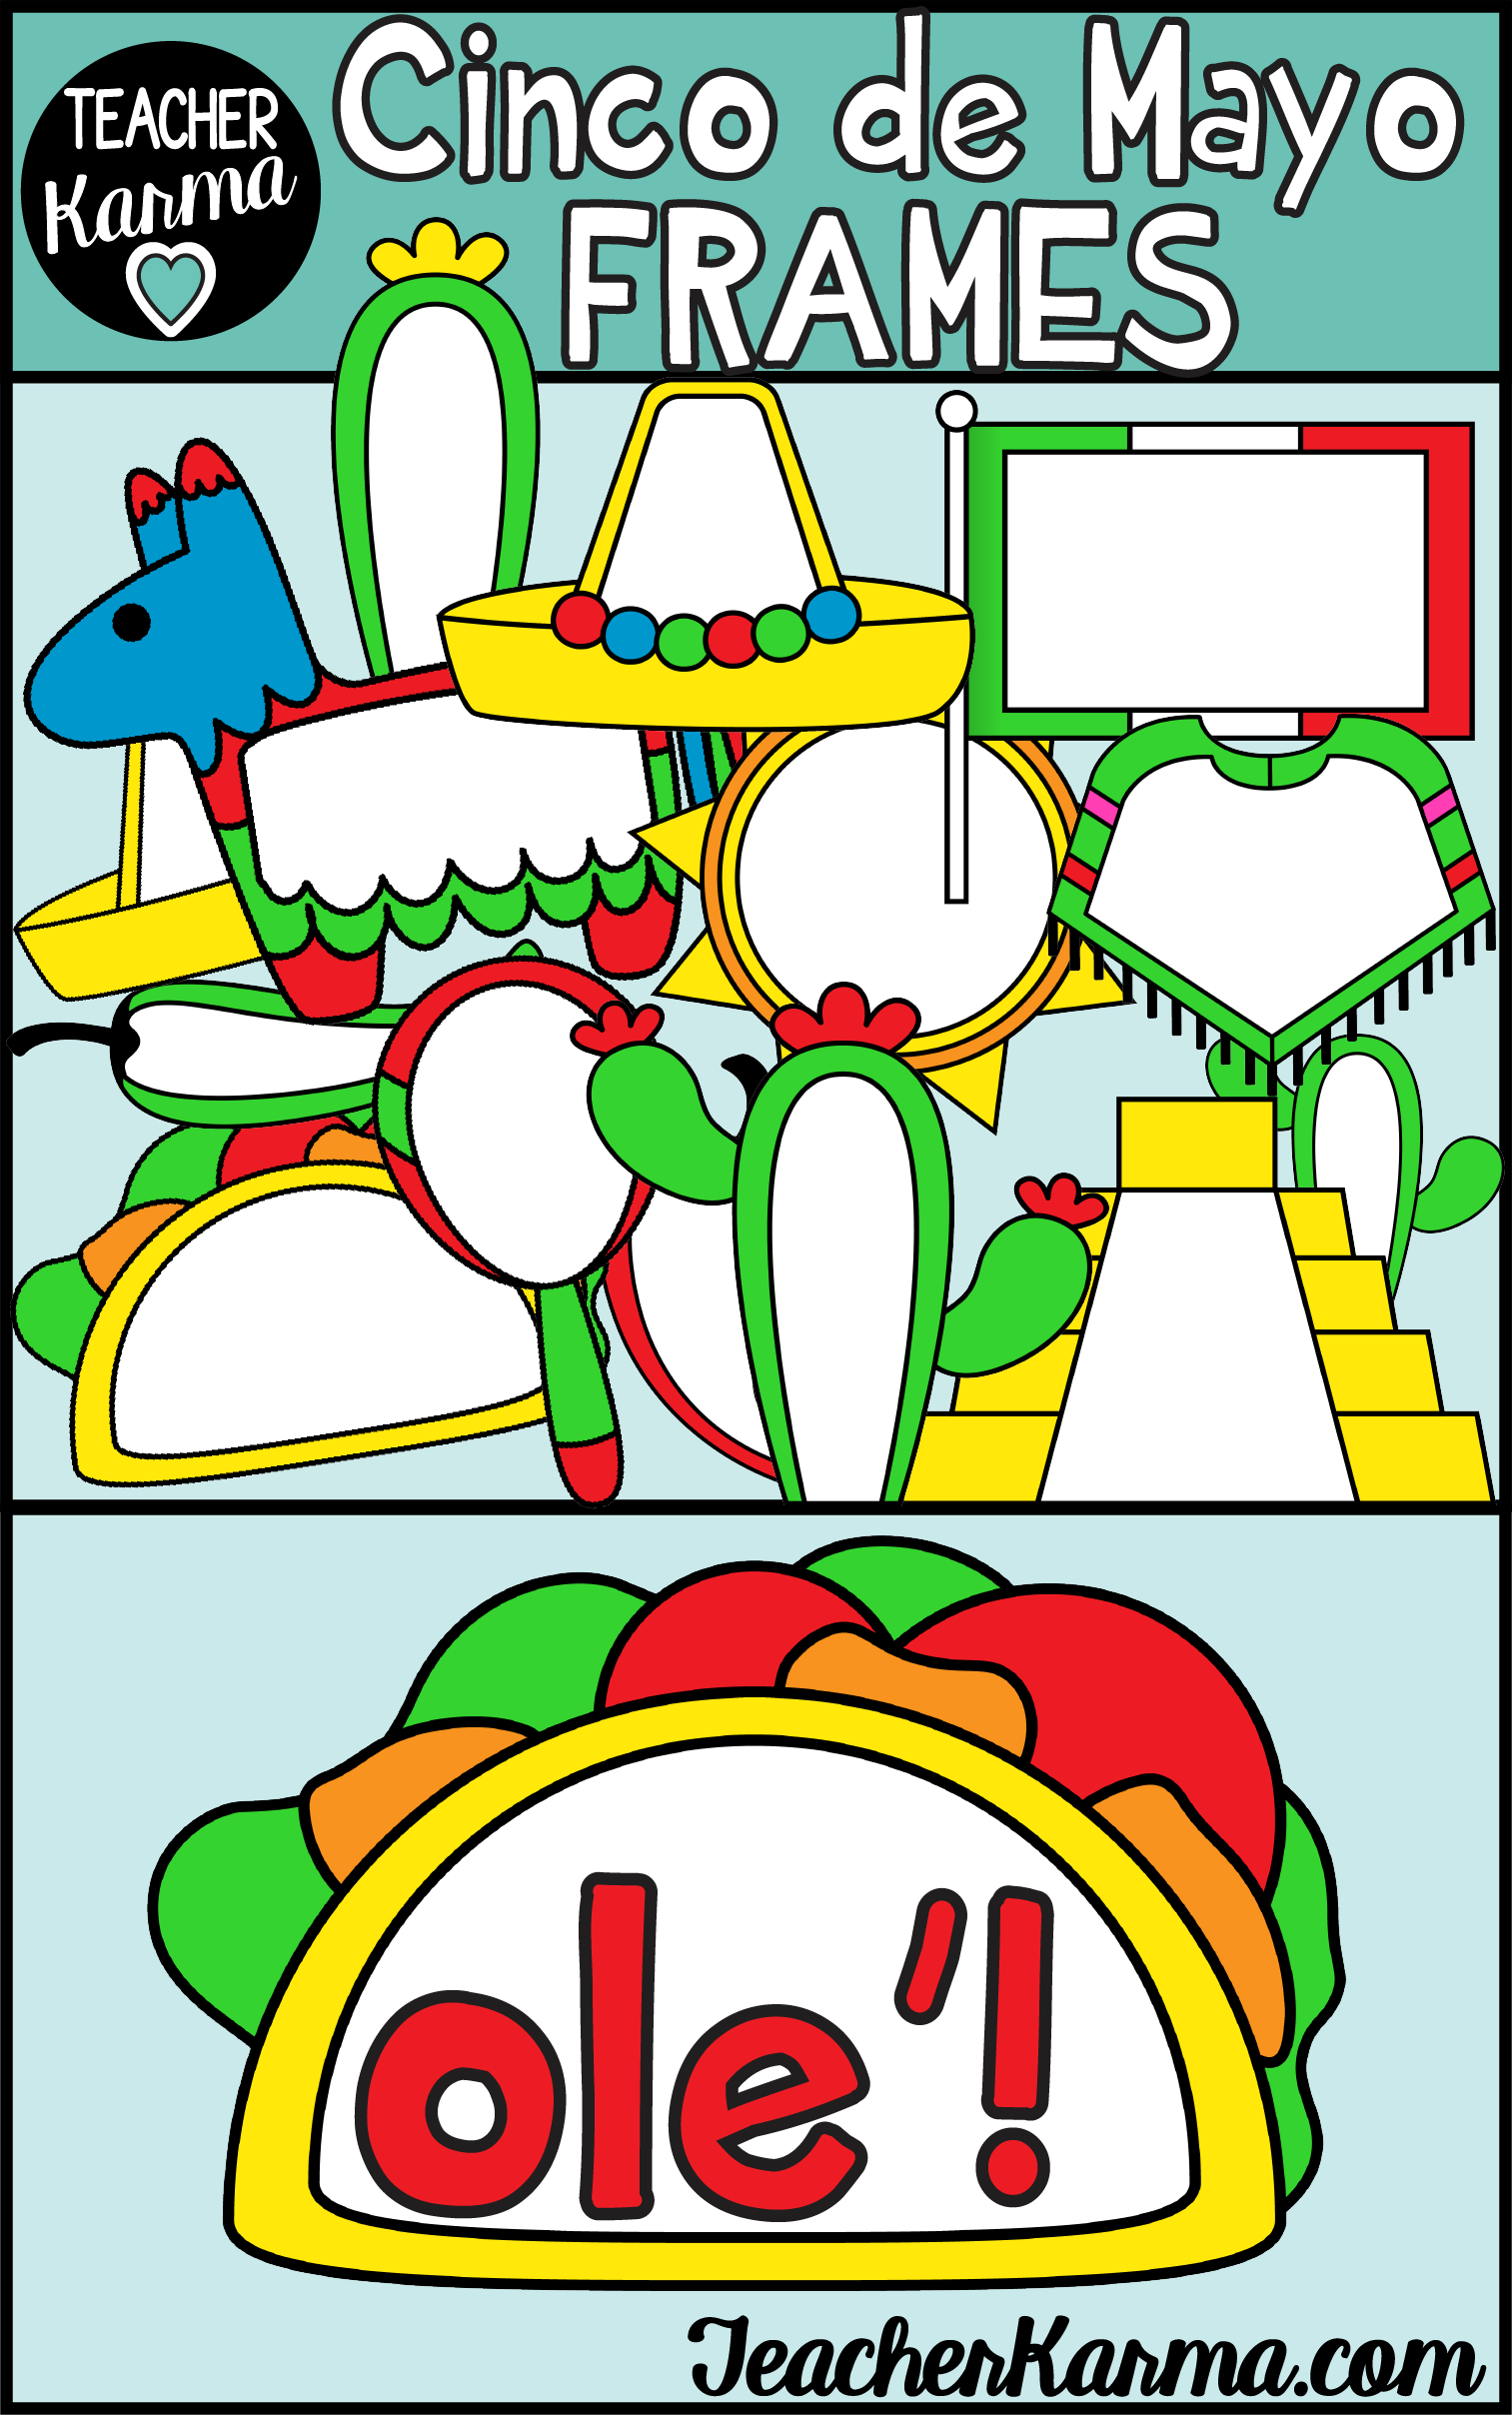 Cinco de Mayo Frames Clipart, Holiday Borders | TK Clipart